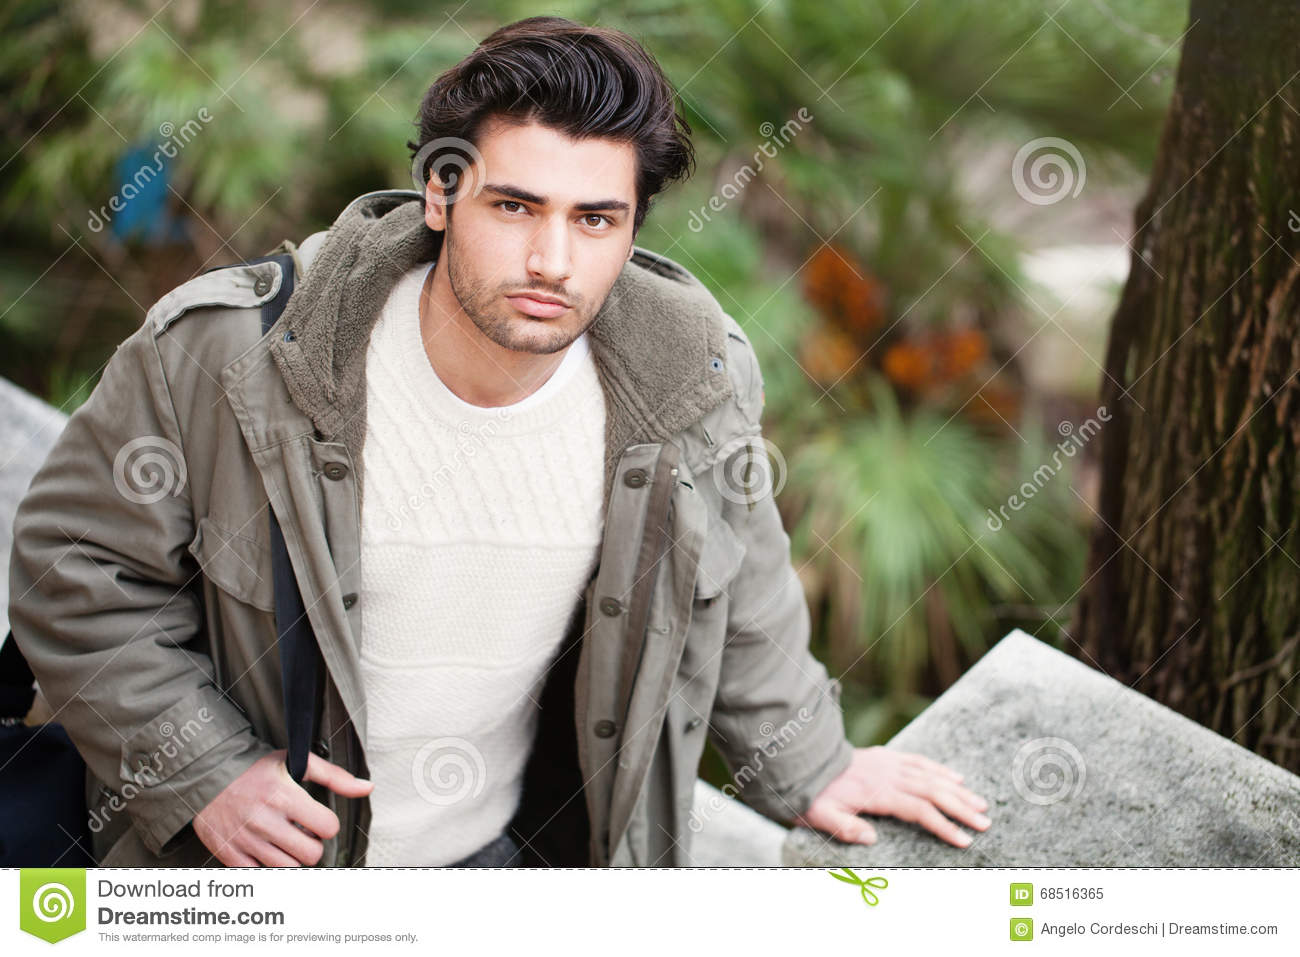 Handsome young italian man, stylish hair and coat outdoors